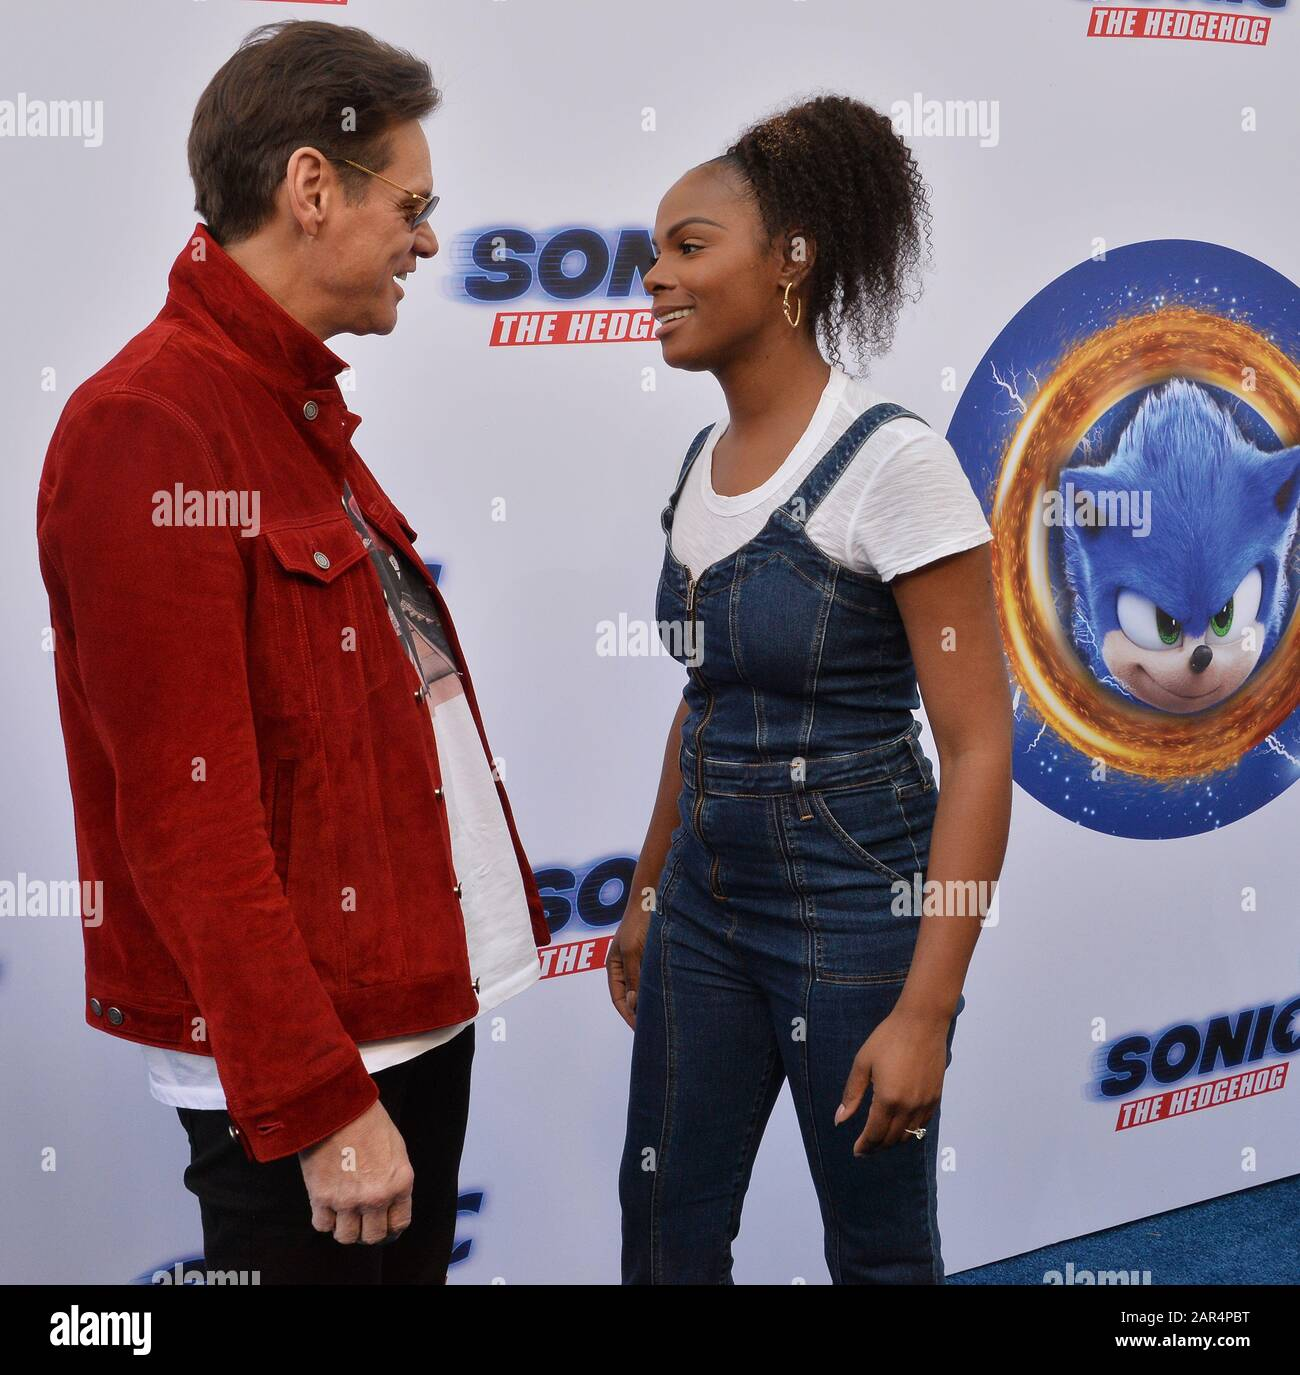 Los Angeles Usa 25th Jan 2020 Cast Members Tika Sumpter And Jim Carrey Attend The Sonic The Hedgehog Family Day Event On The Paramount Pictures Lot In Los Angeles On Saturday January